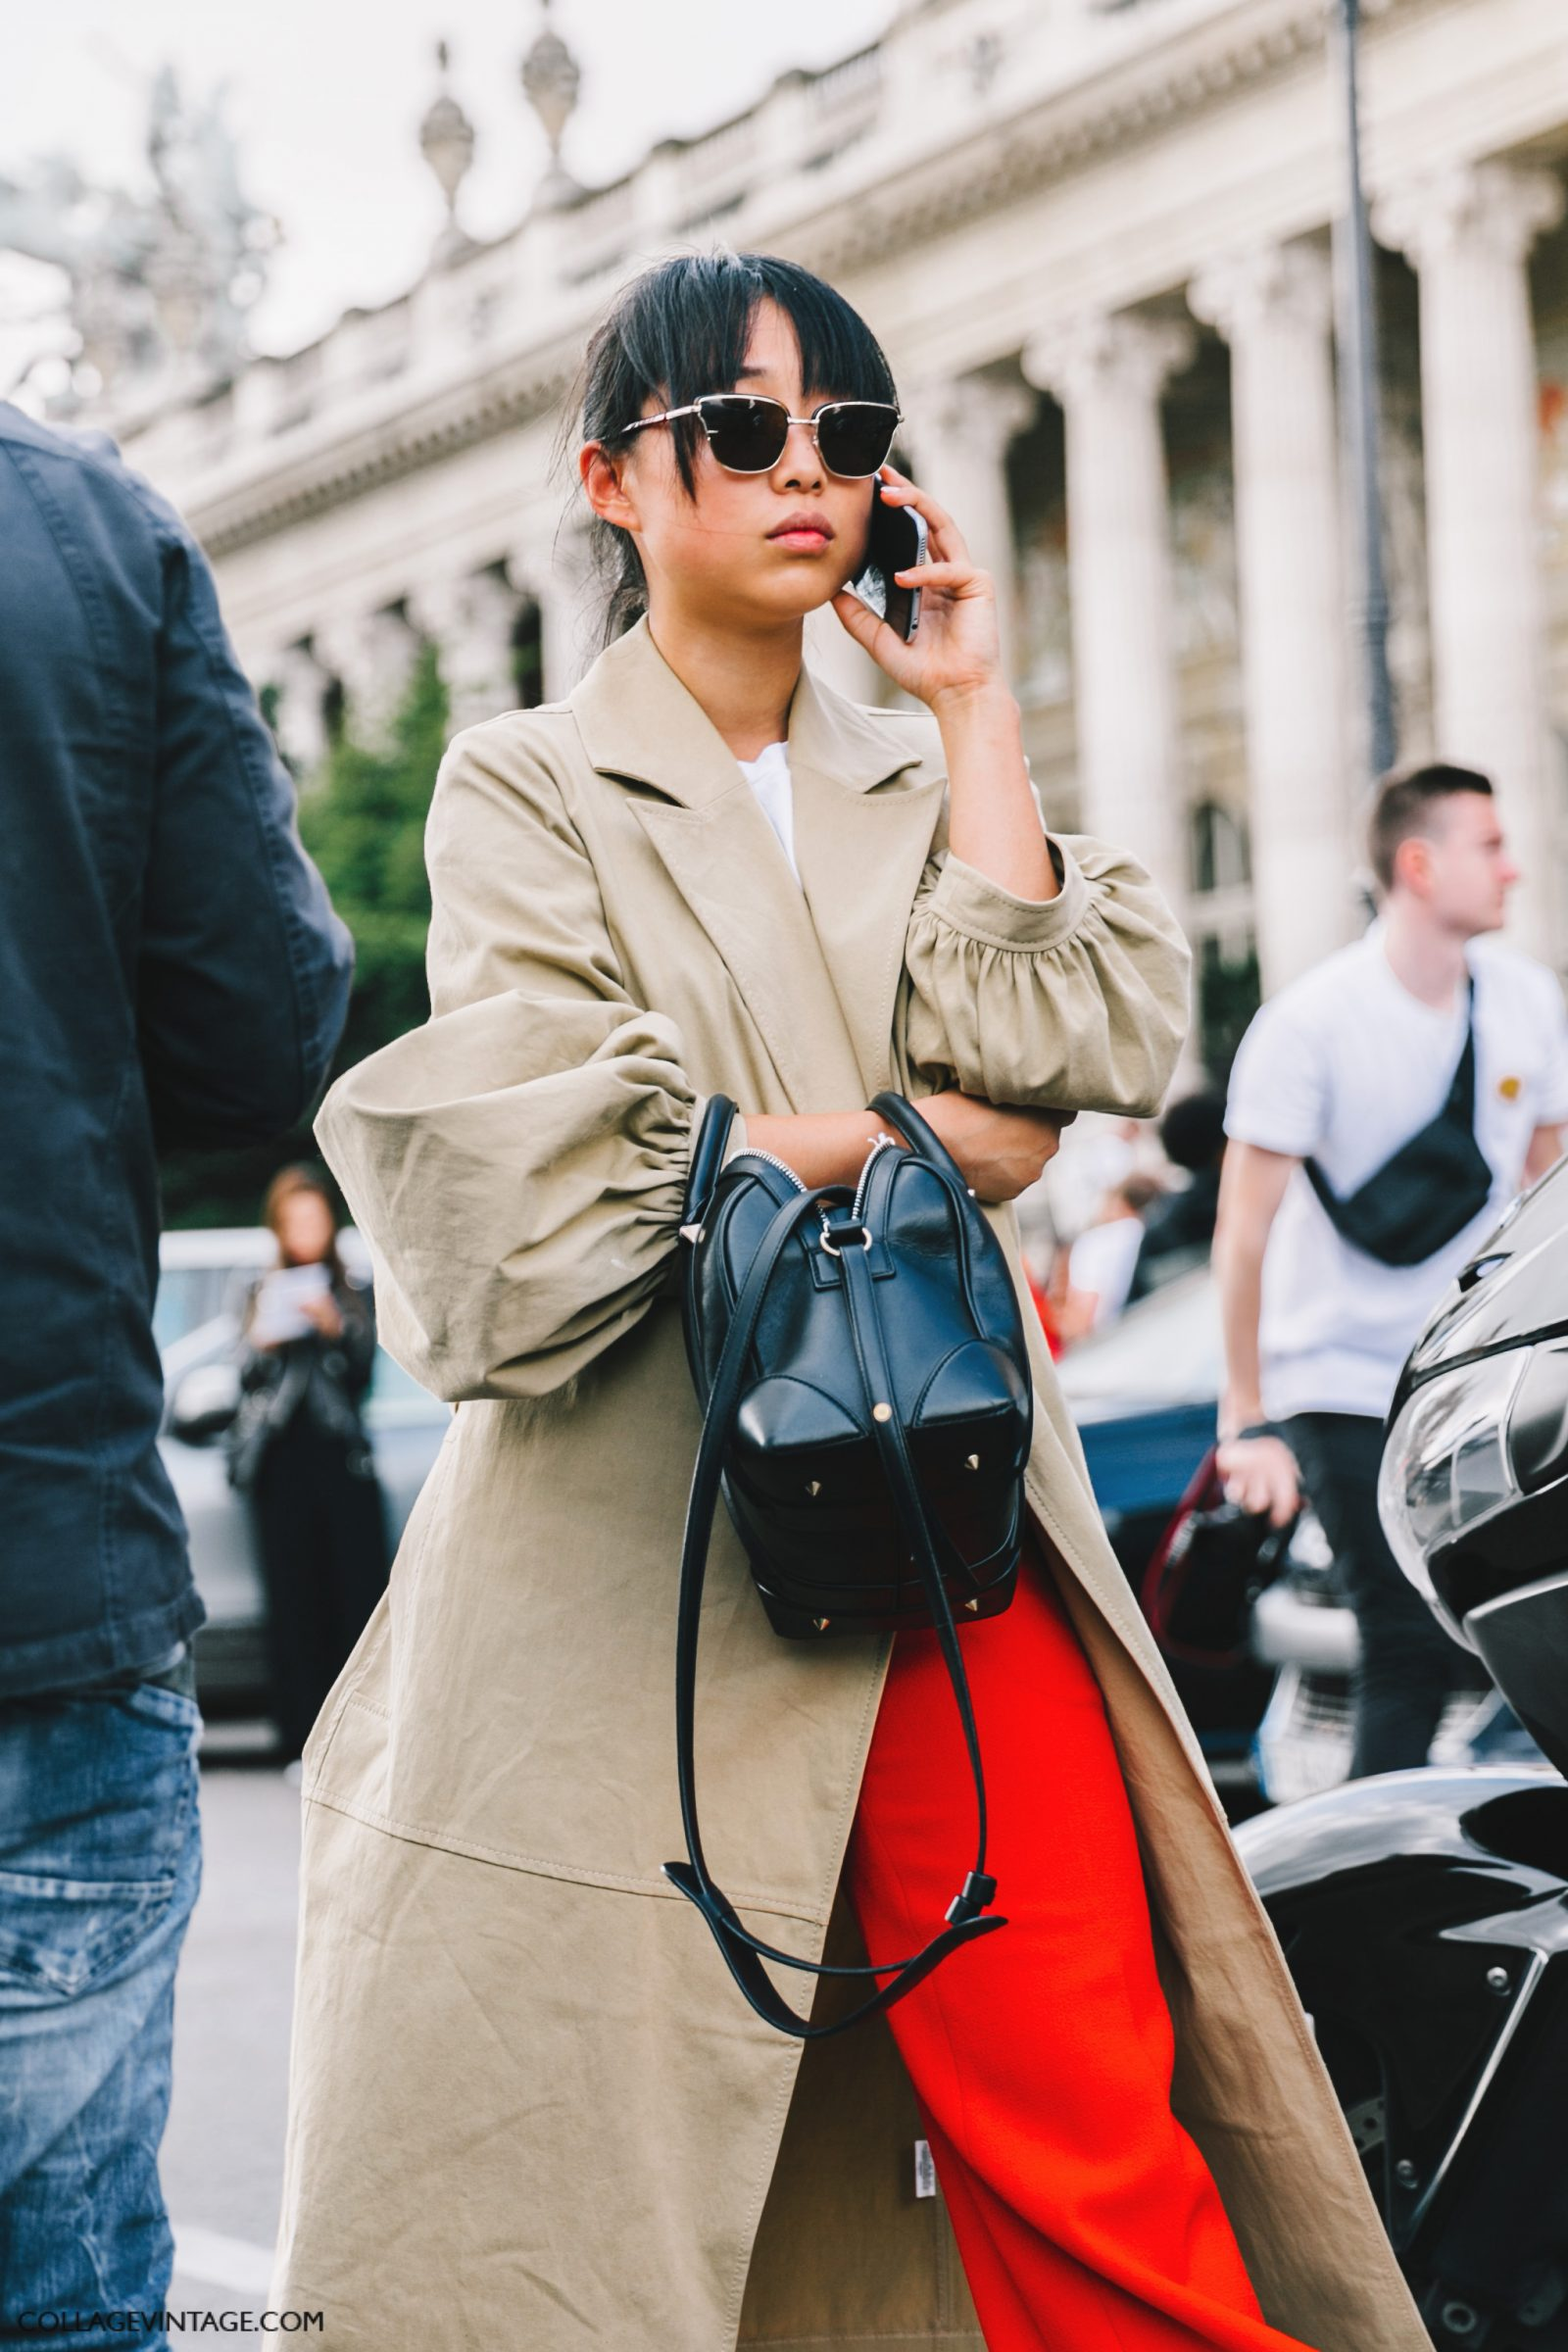 pfw-paris_fashion_week_ss17-street_style-outfits-collage_vintage-rochas-courreges-dries_van_noten-lanvin-guy_laroche-64